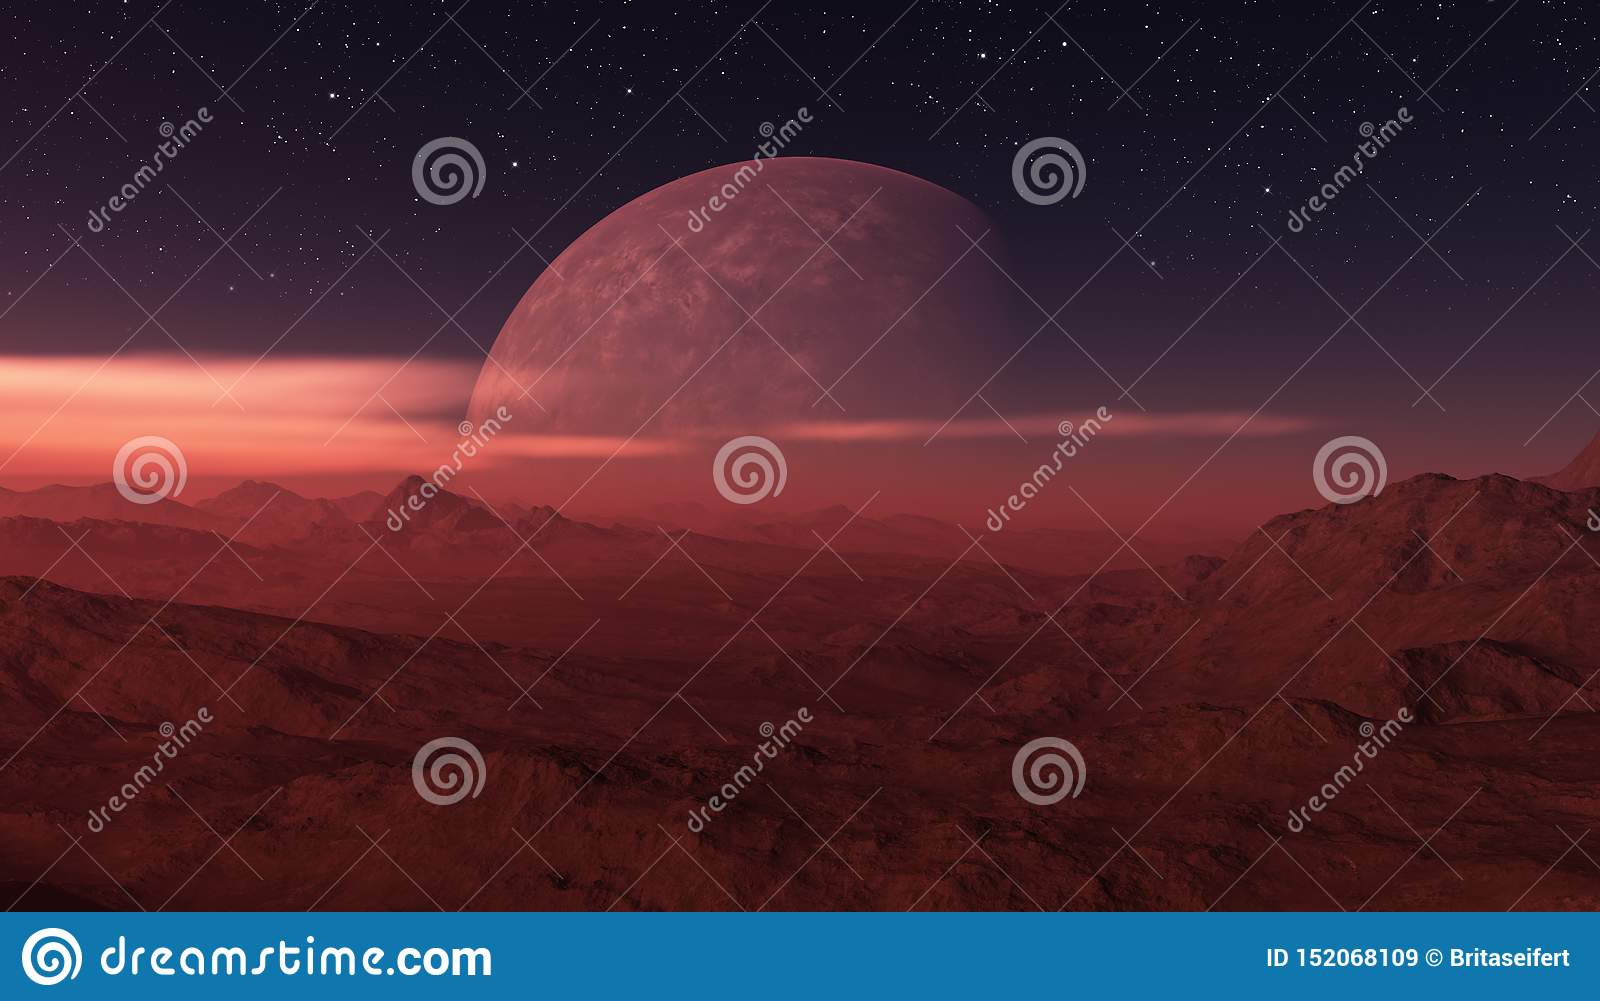 3d Rendered Space Art Alien Planet A Fantasy Landscape With Dark Skies And Clouds Stock Illustration Illustration Of Astrology Fiction 152068109